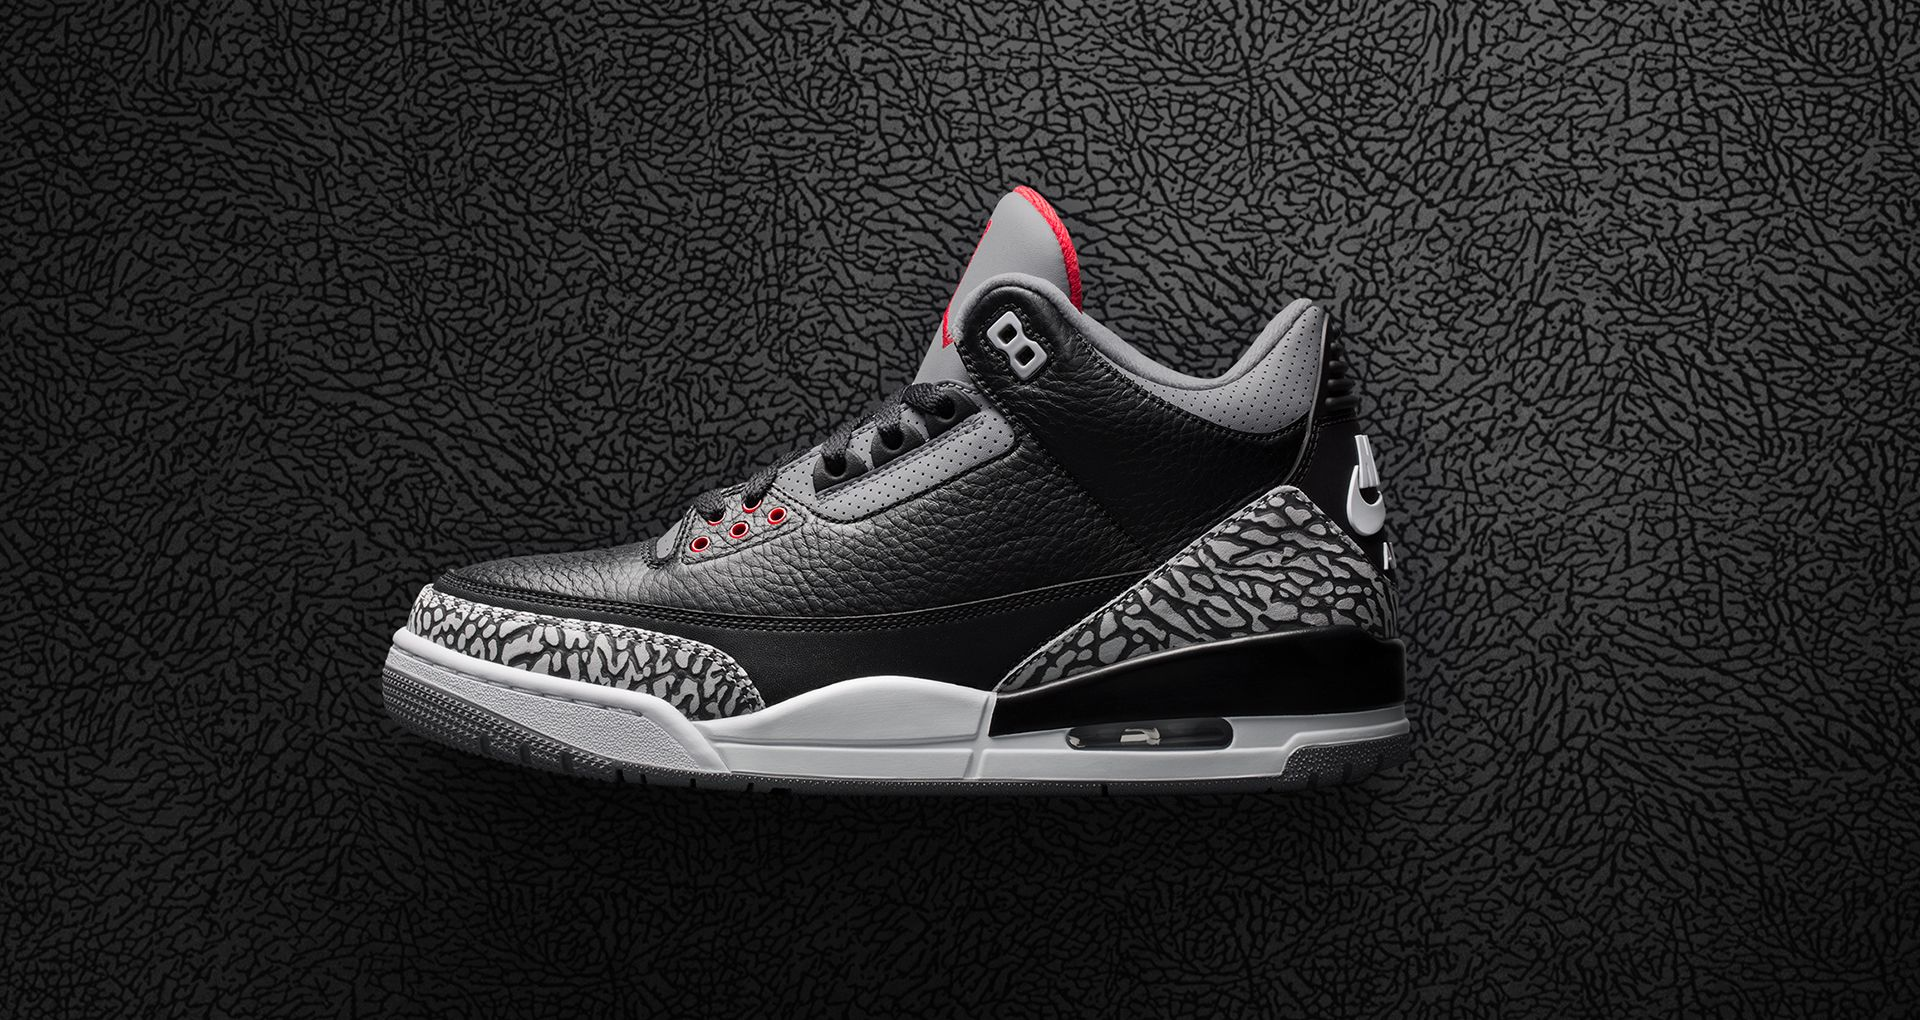 separation shoes 29a15 b250a Air Jordan 3 Retro OG 'Black Cement' 2018 Release Date ...